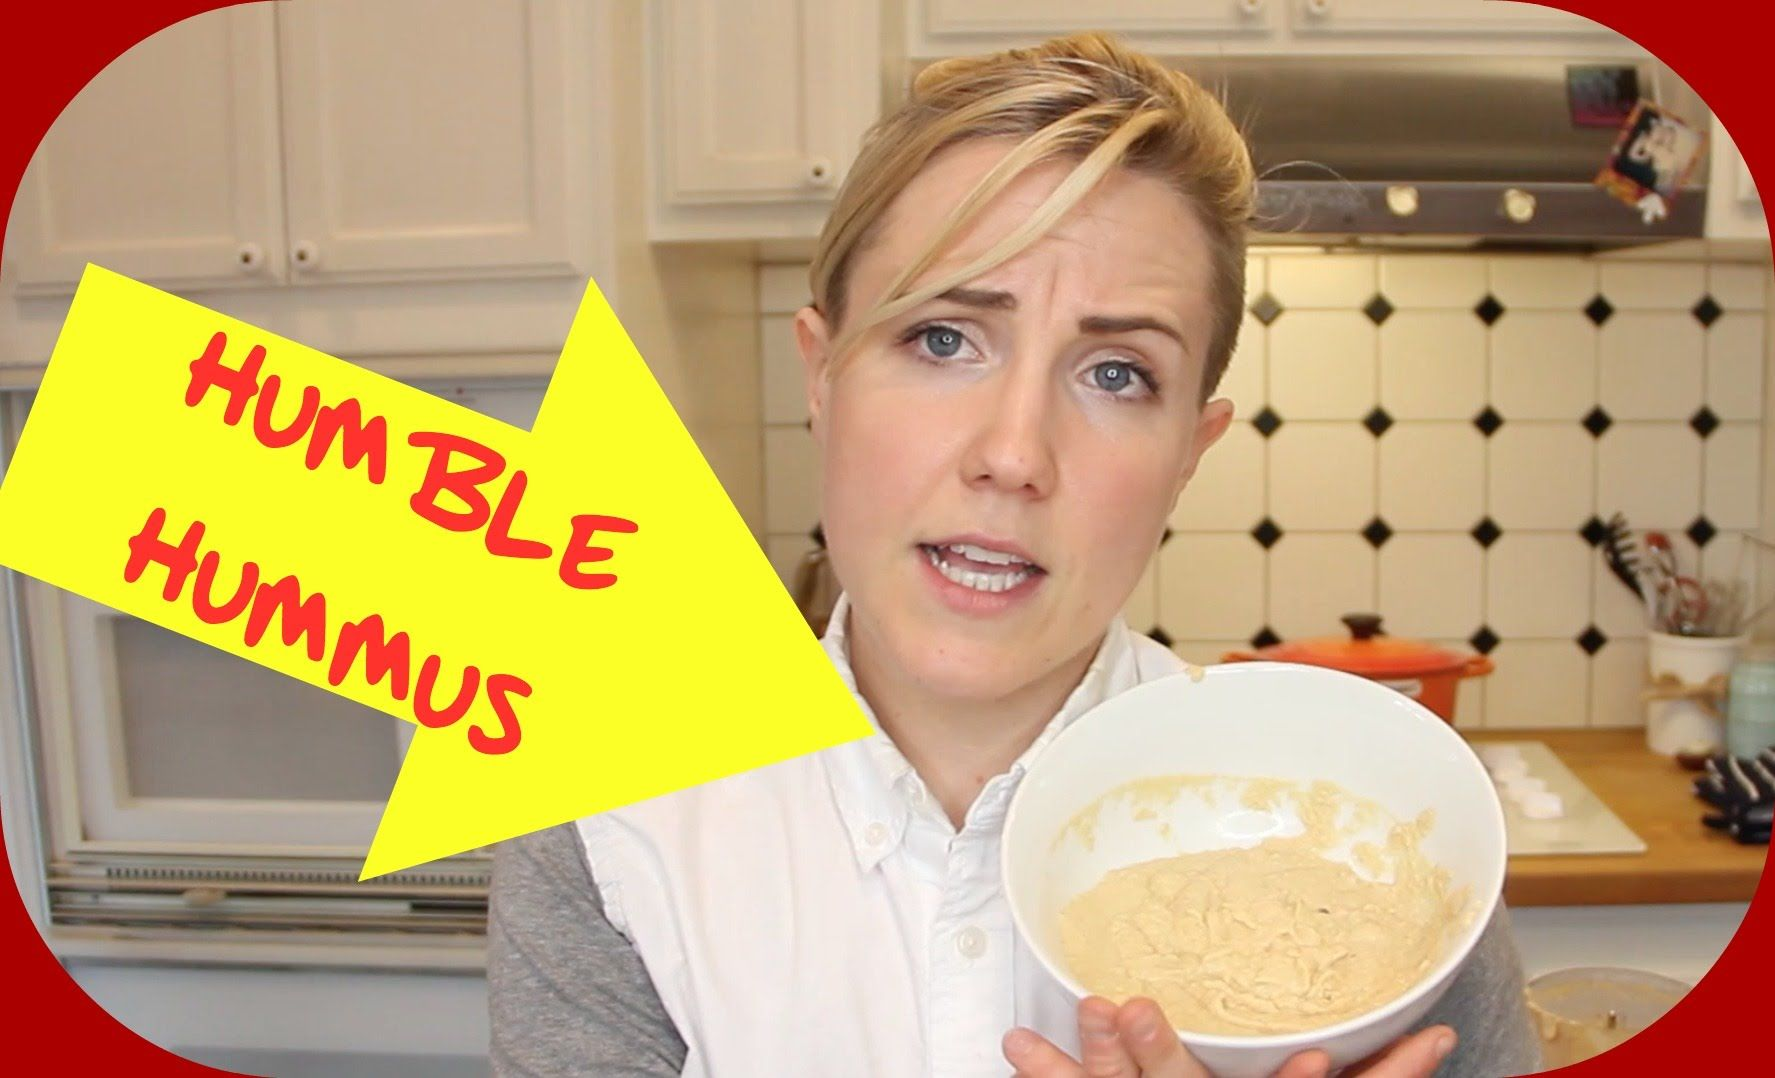 my drunk kitchen: humble hummus! what should i talk about next